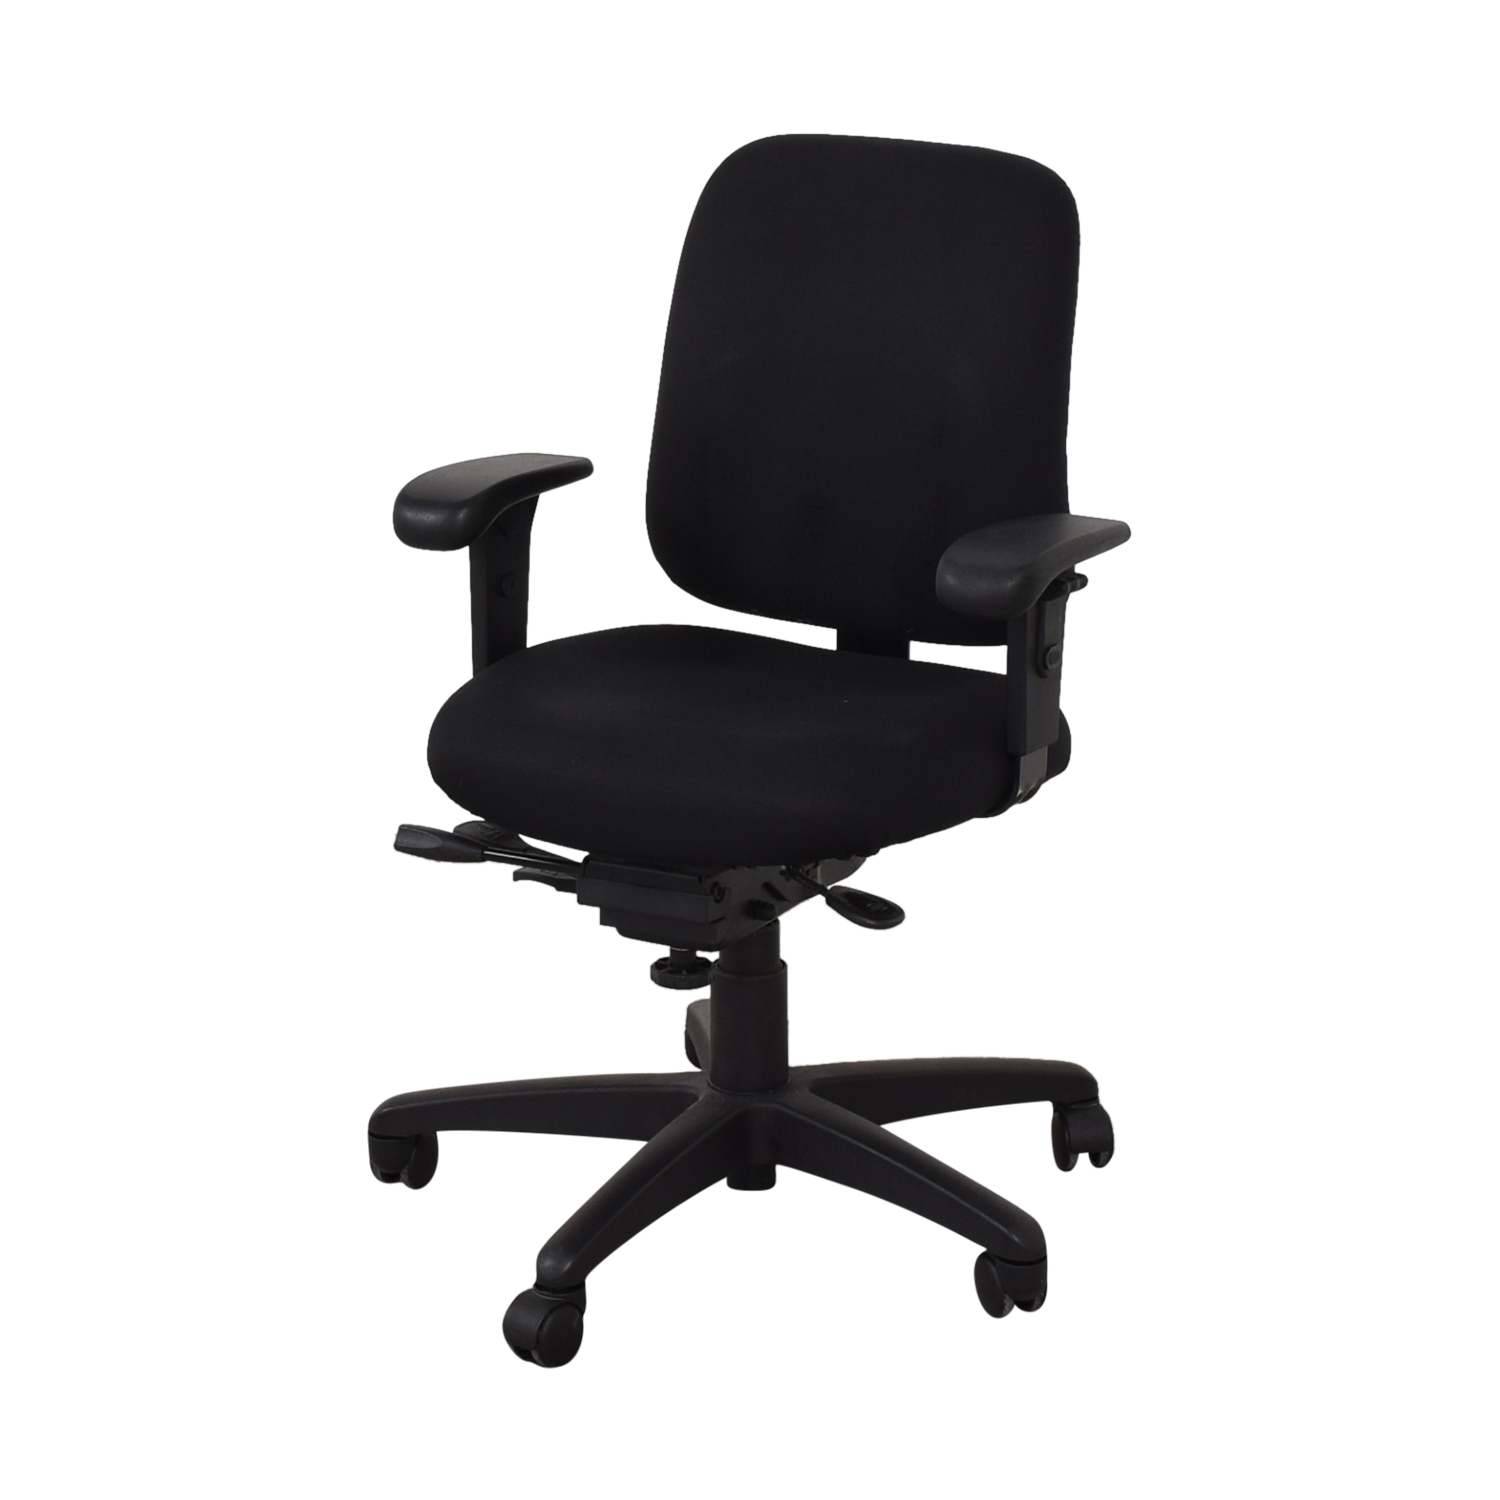 Office Master Office Master PT Value Economy Task Chair with Arms for sale